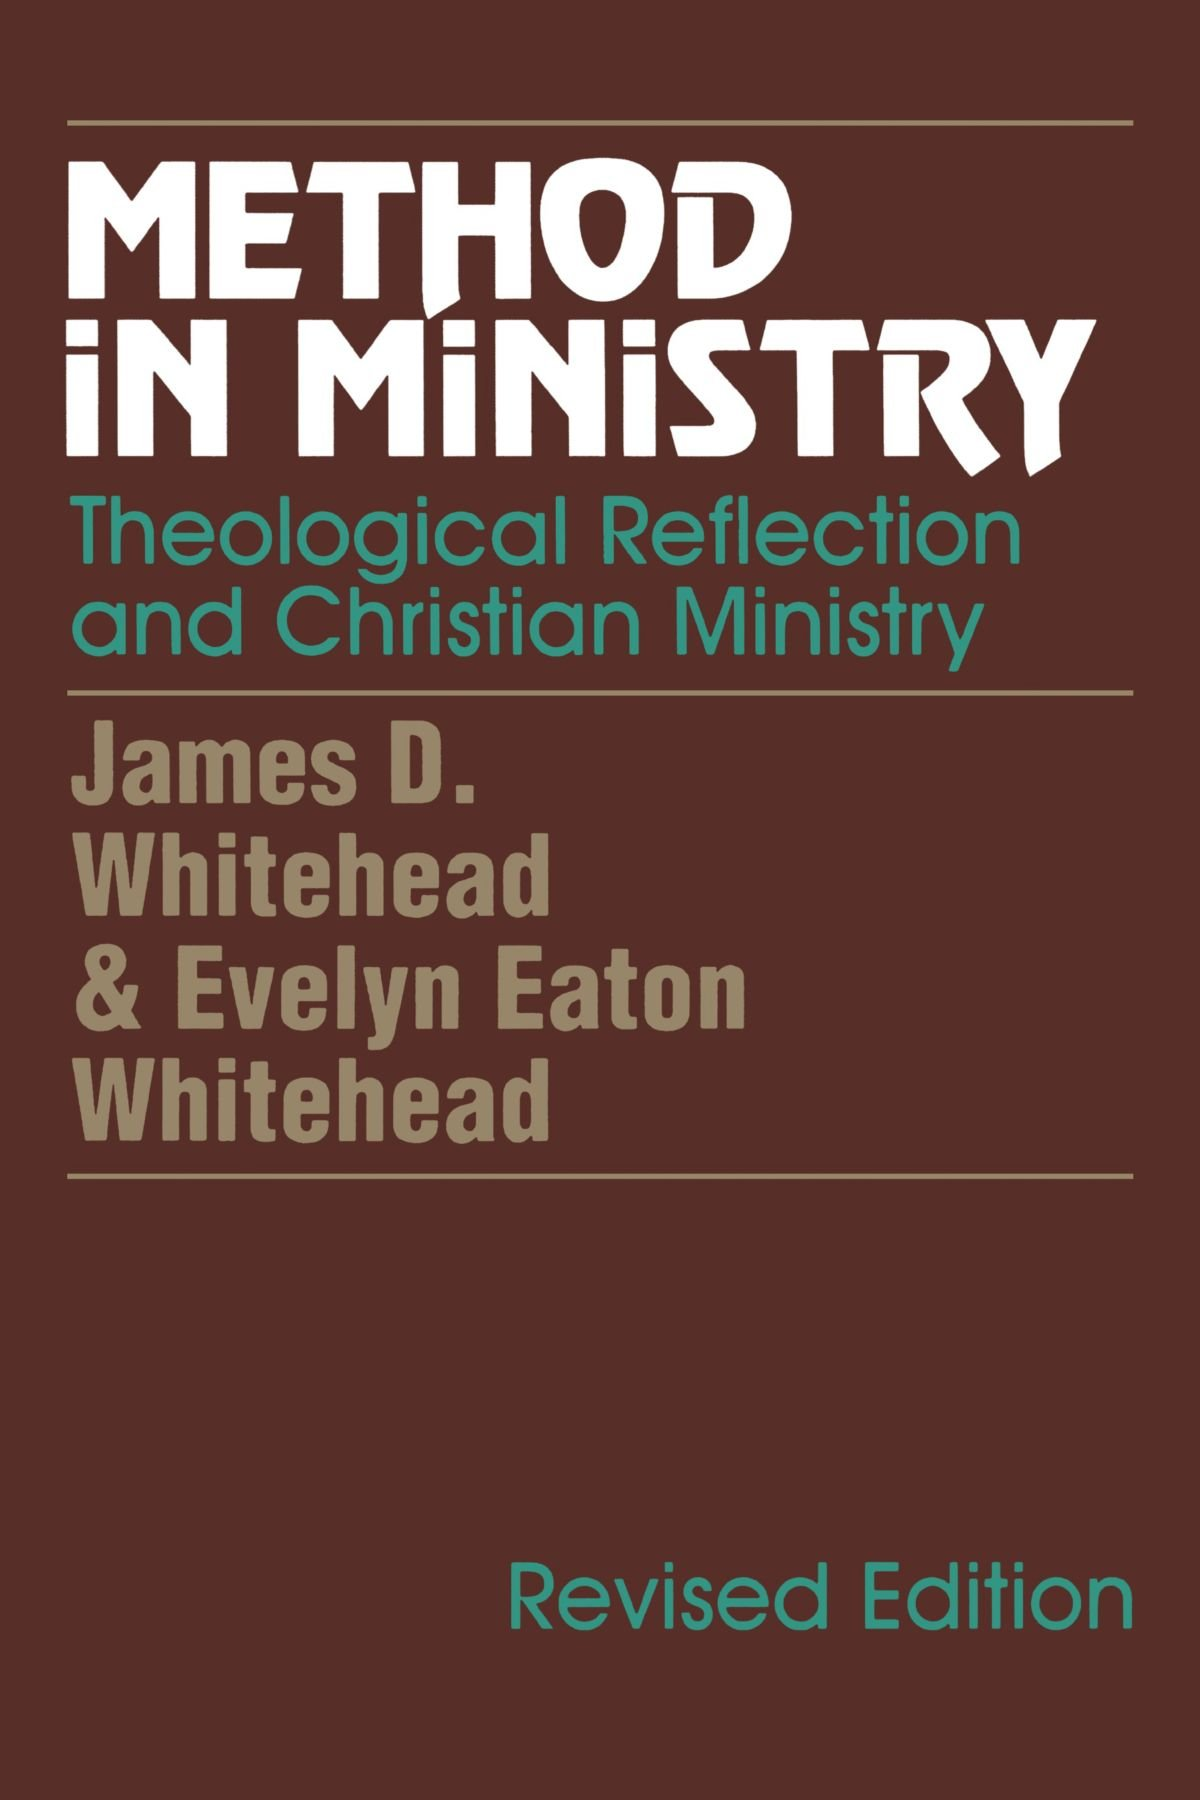 Amazon com method in ministry theological reflection and christian ministry revised 9781556128066 james d whitehead evelyn eaton whitehead books